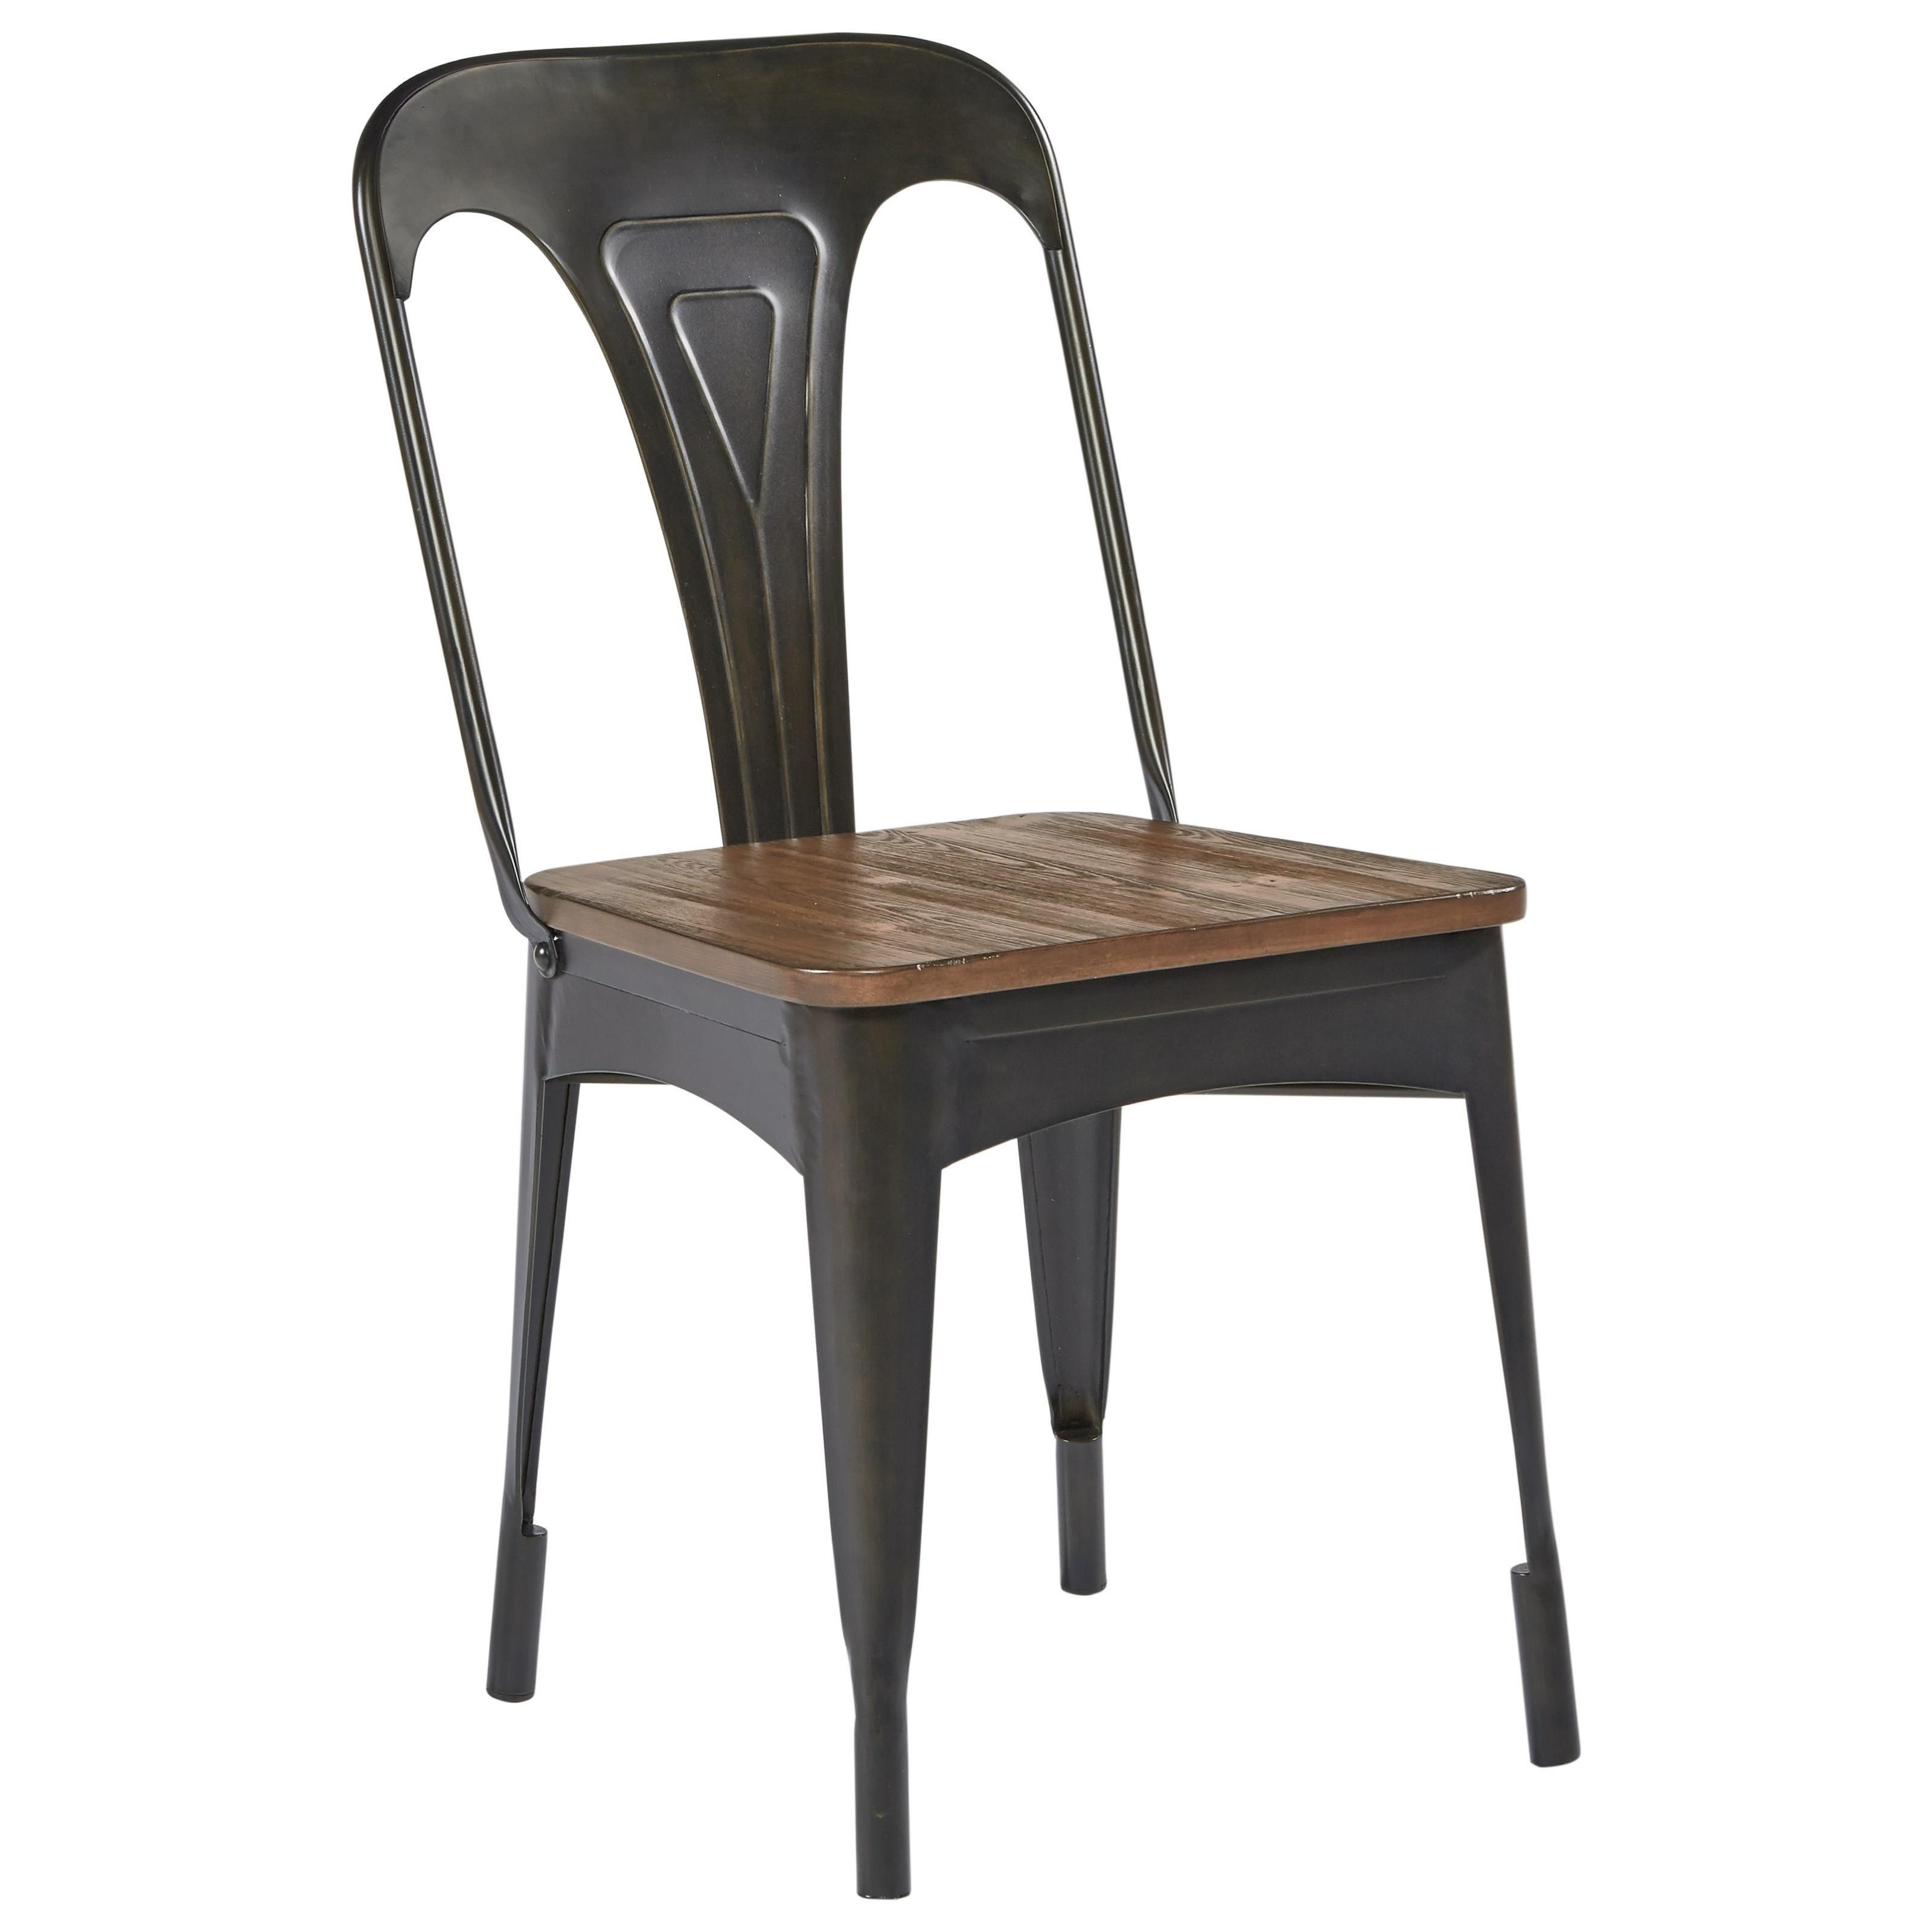 Magnolia Home by Joanna Gaines Boho Metal Cafe Chair - Item Number: 5010801N